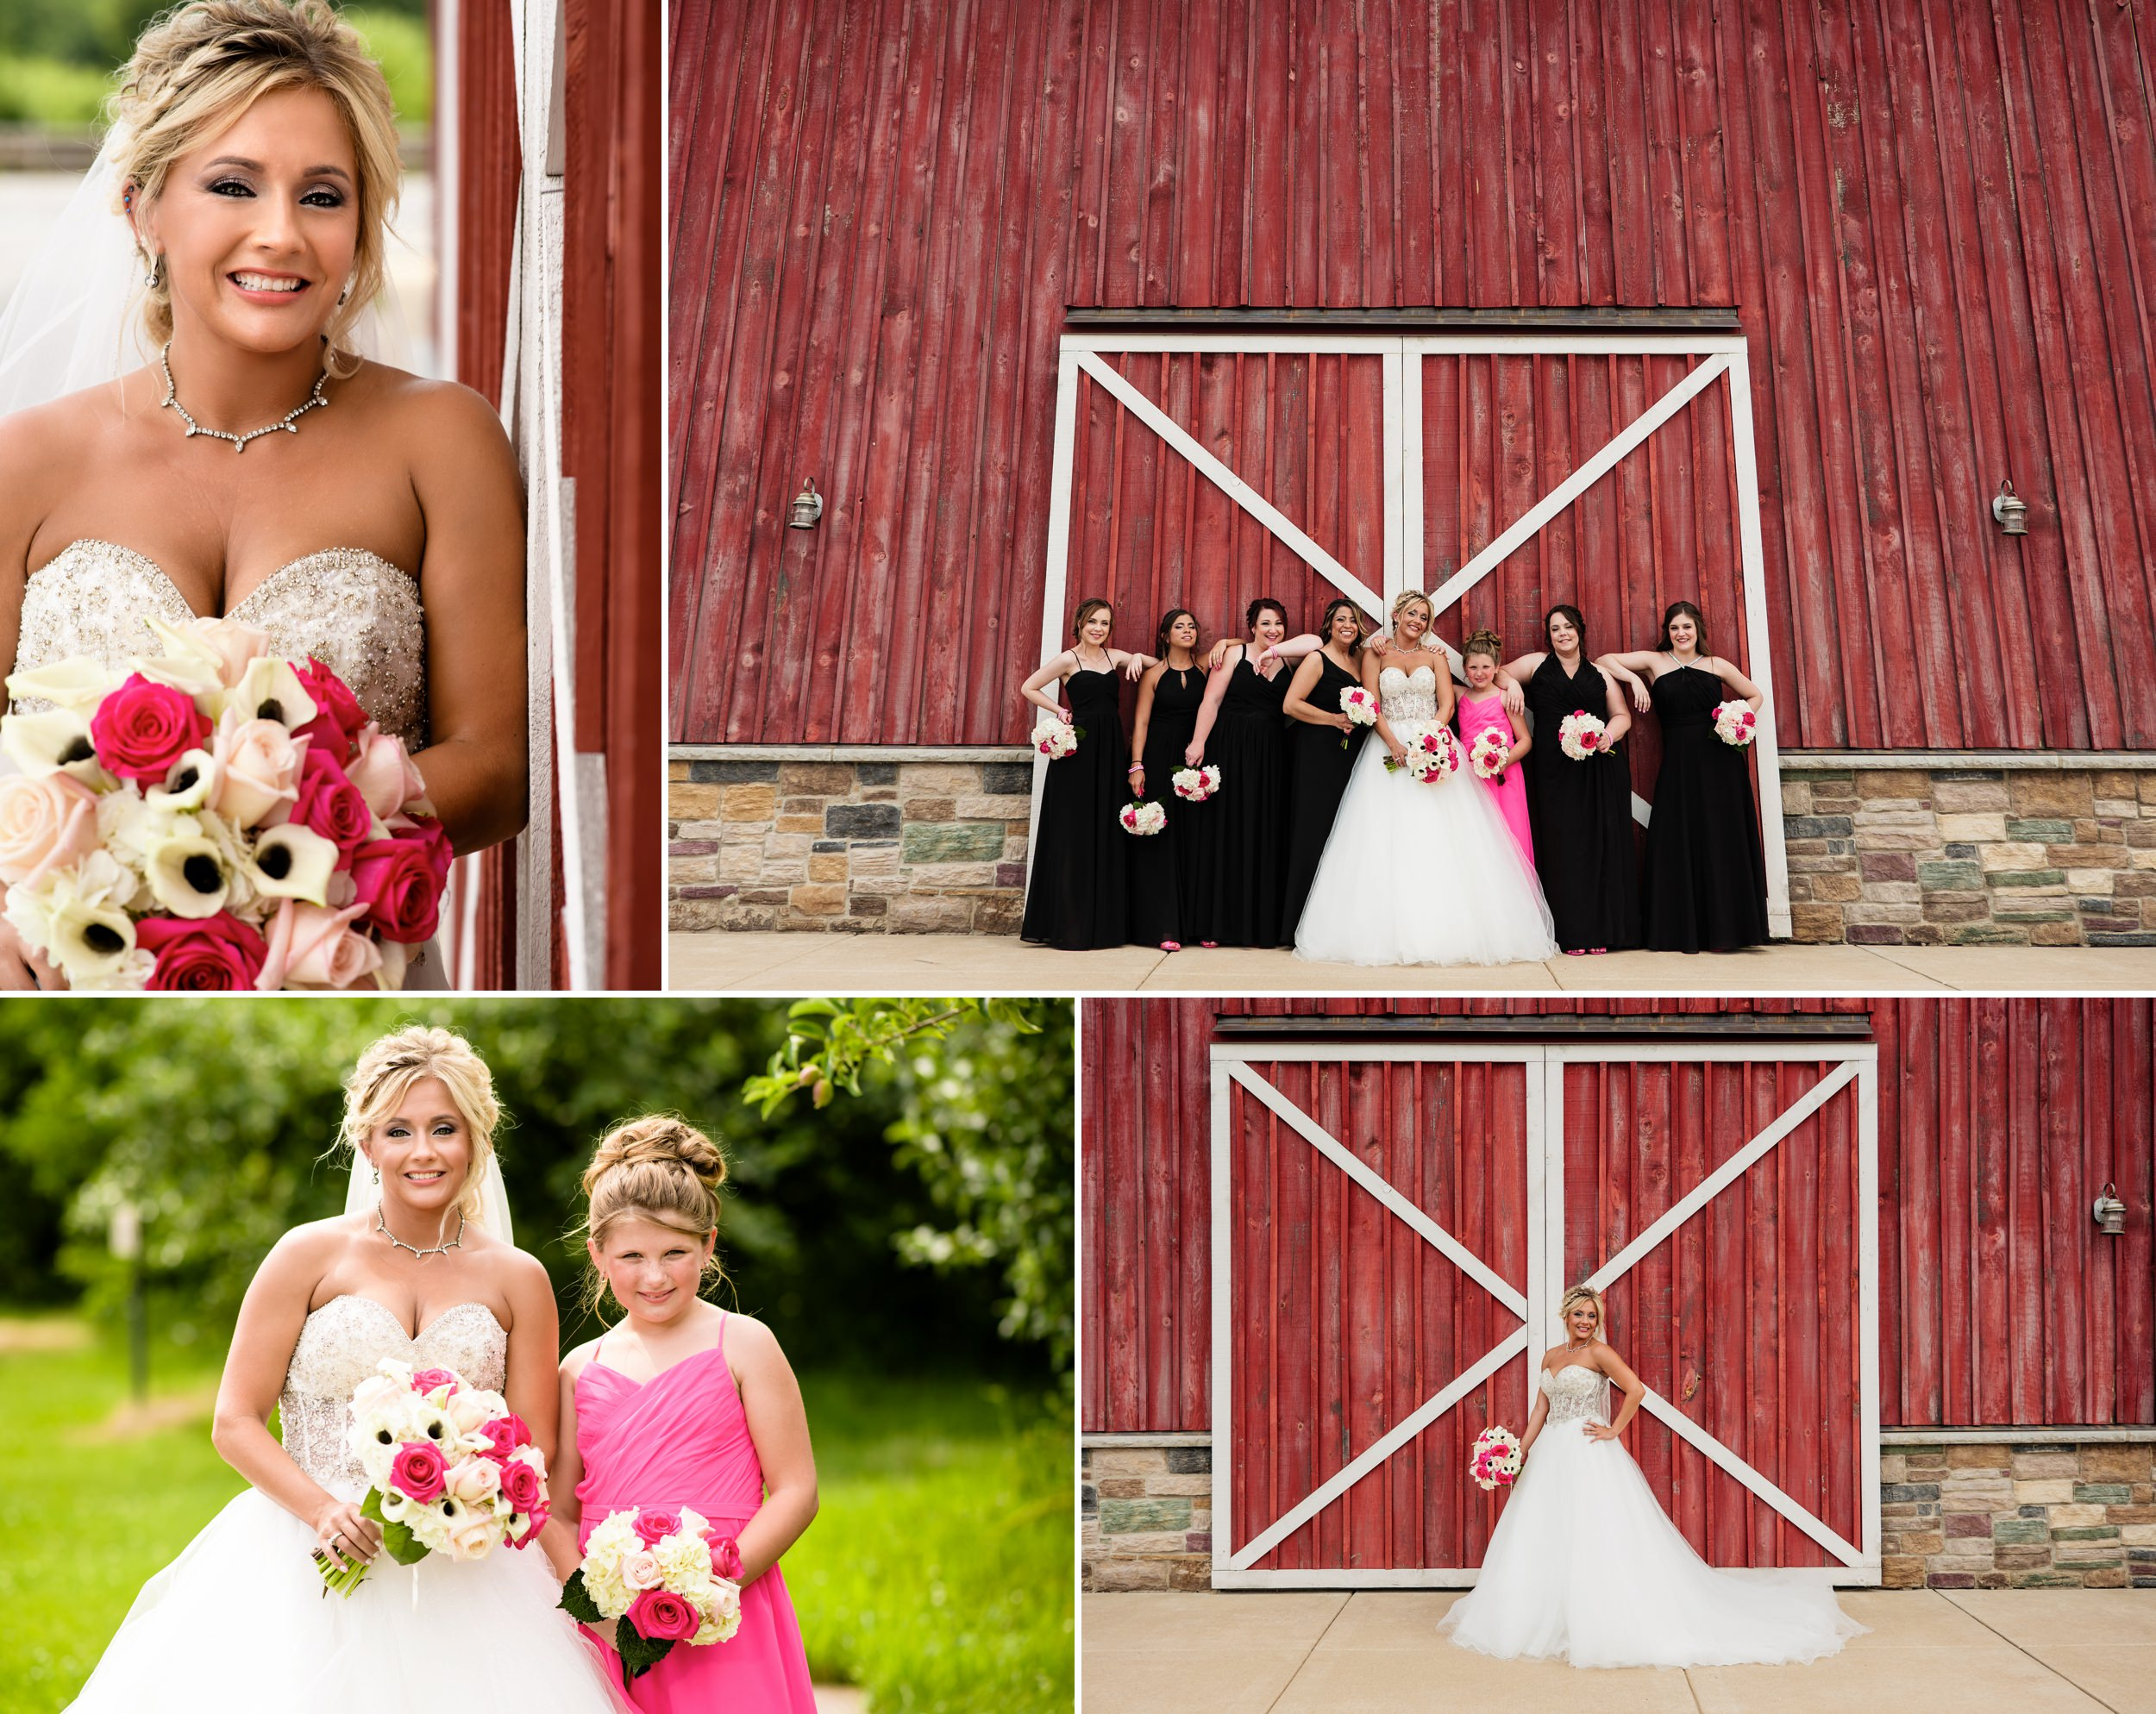 Bride and her bridesmaids by the big barn.